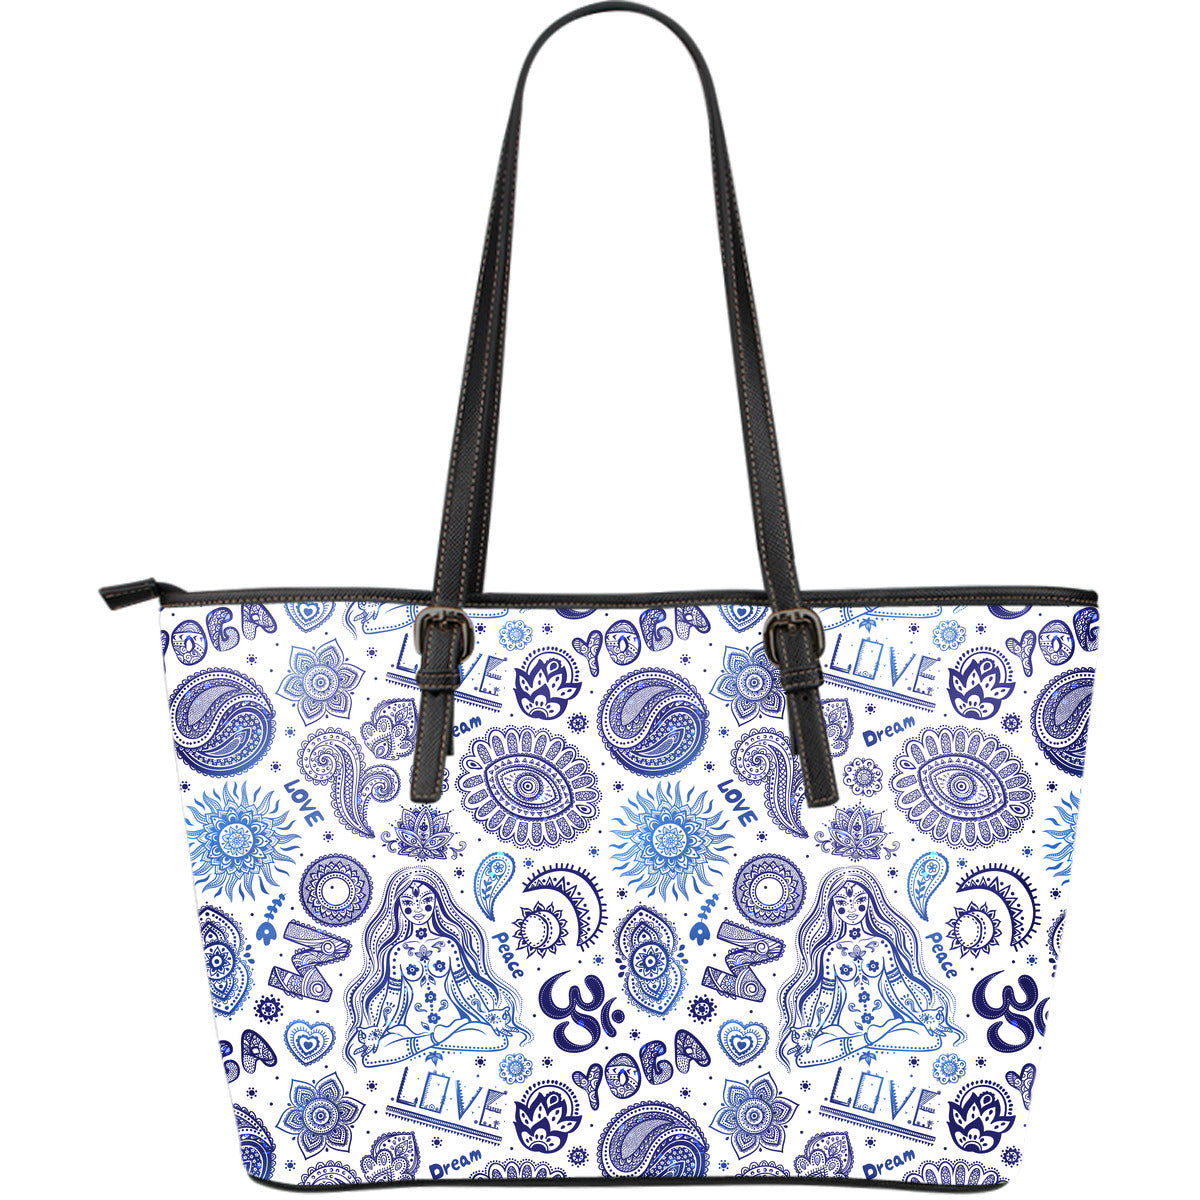 Yoga Love Large Leather Tote Bag